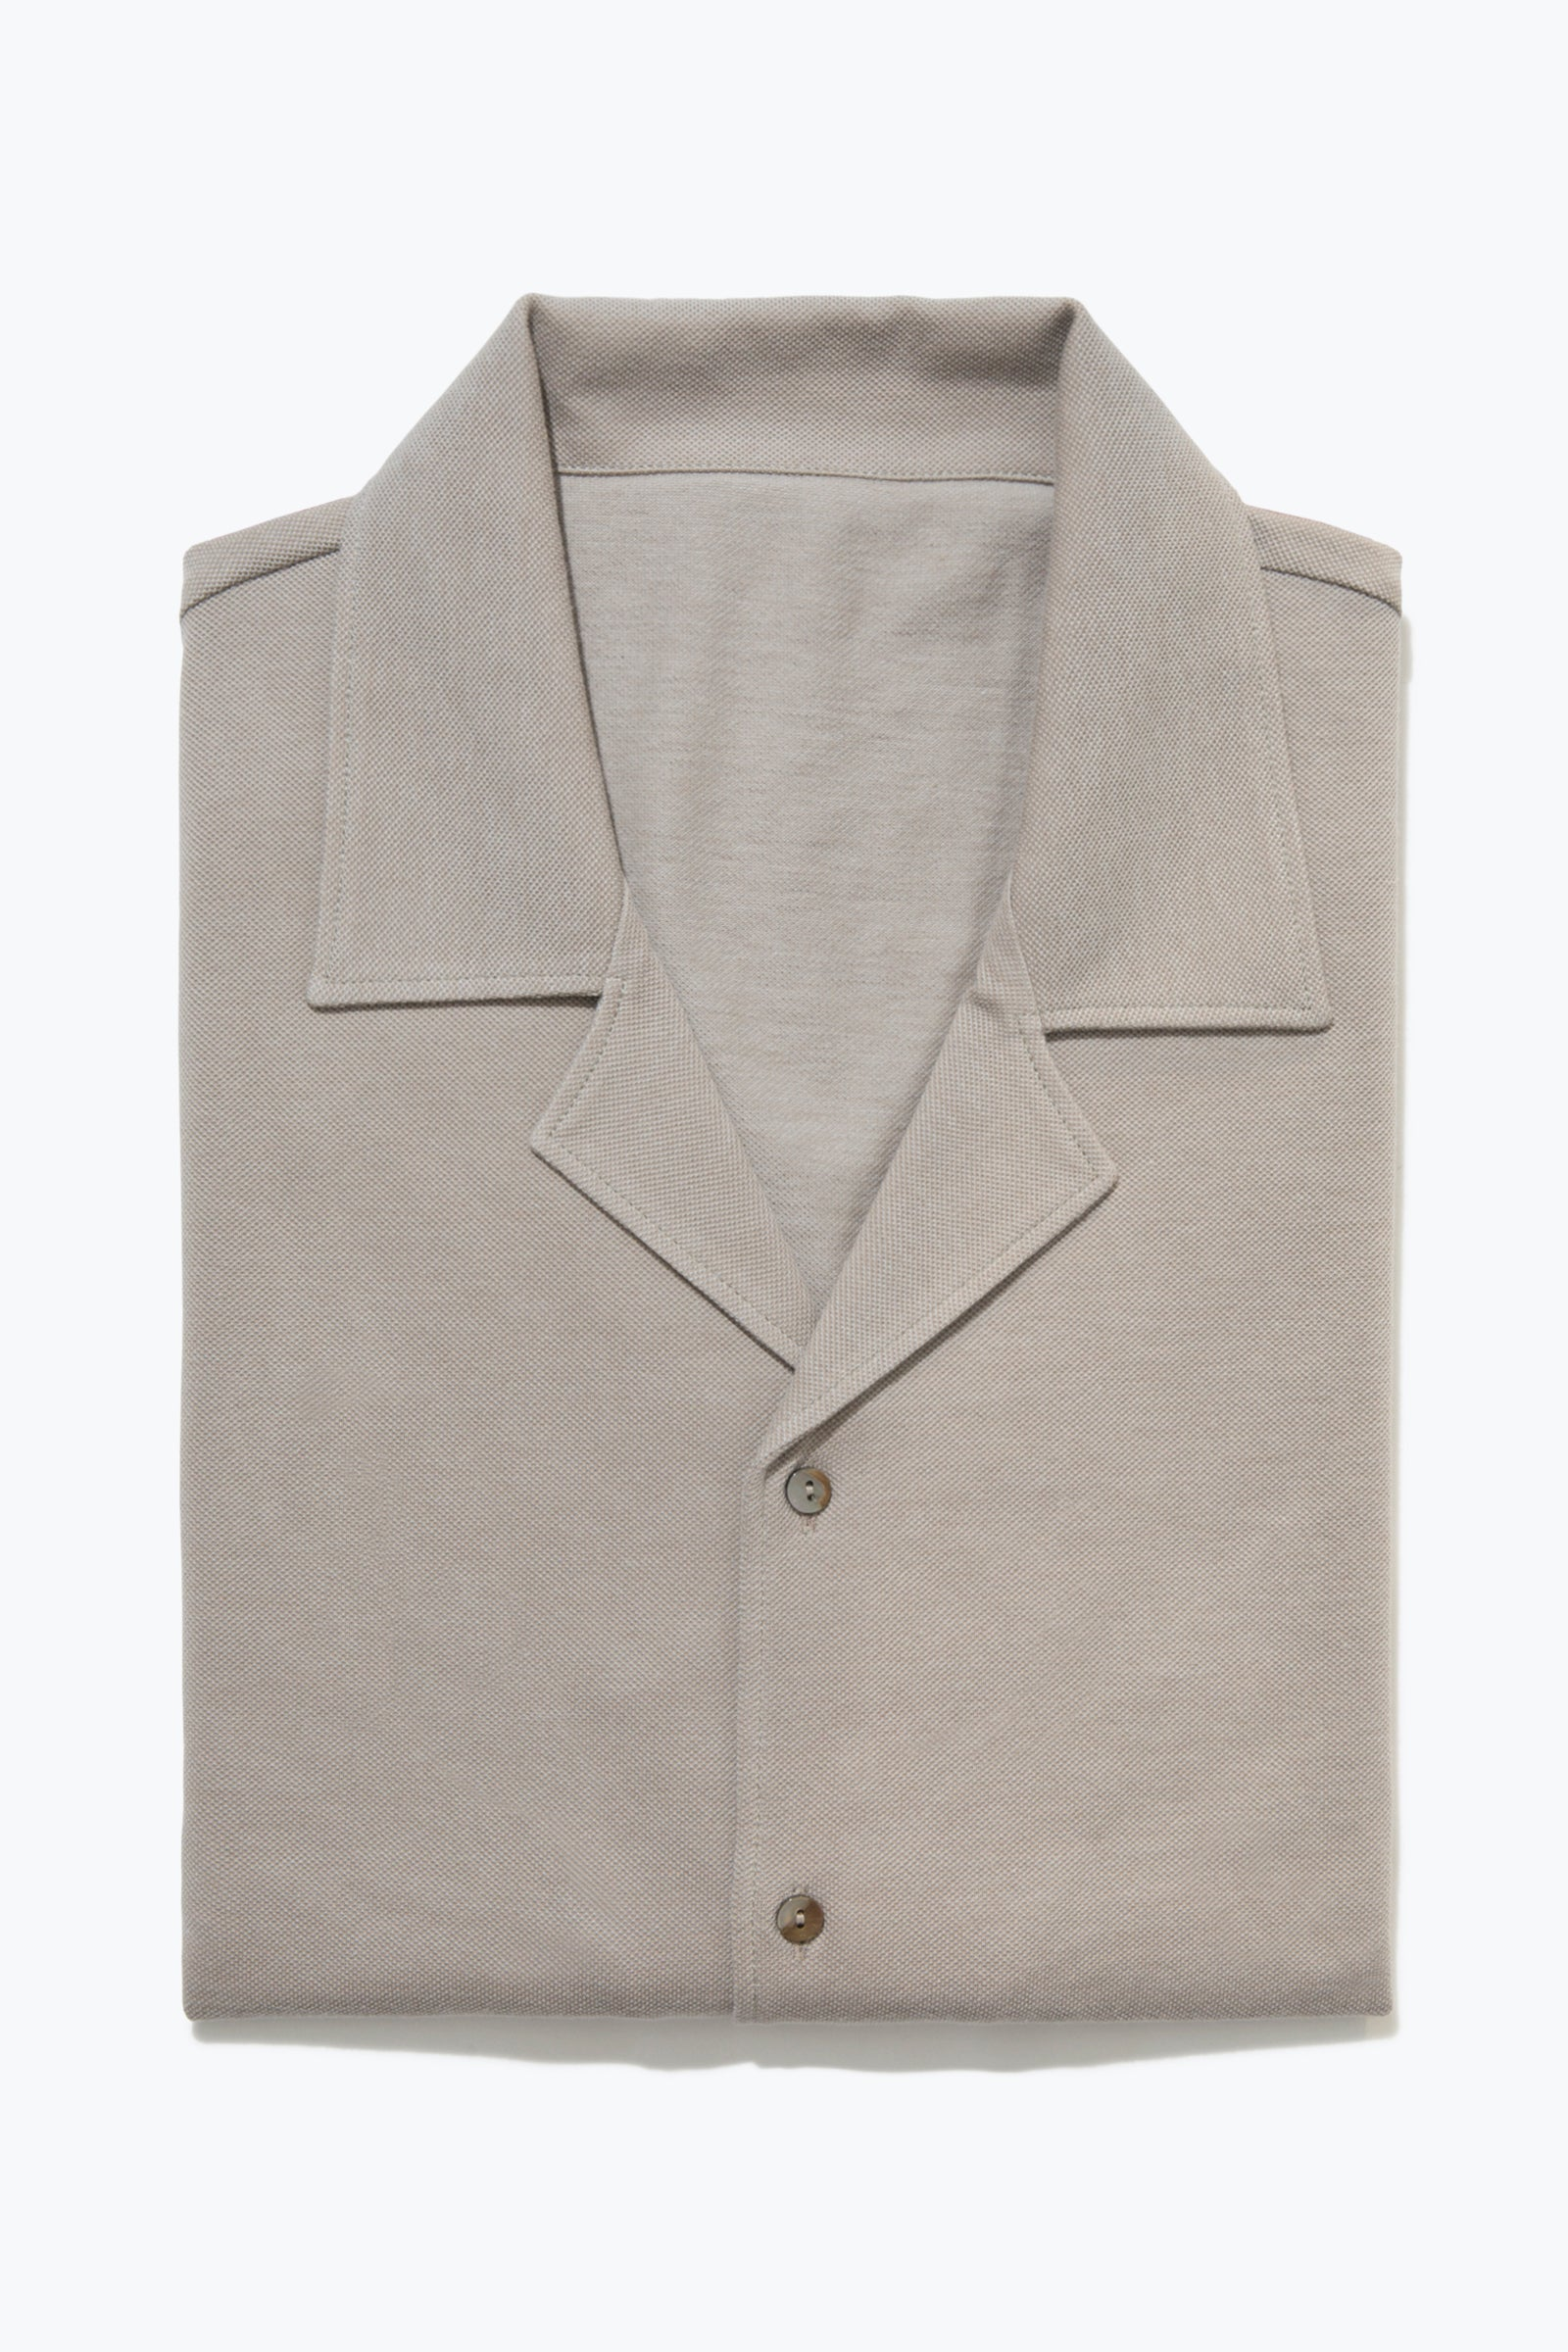 Knitwear - Lounge Shirt (Taupe)